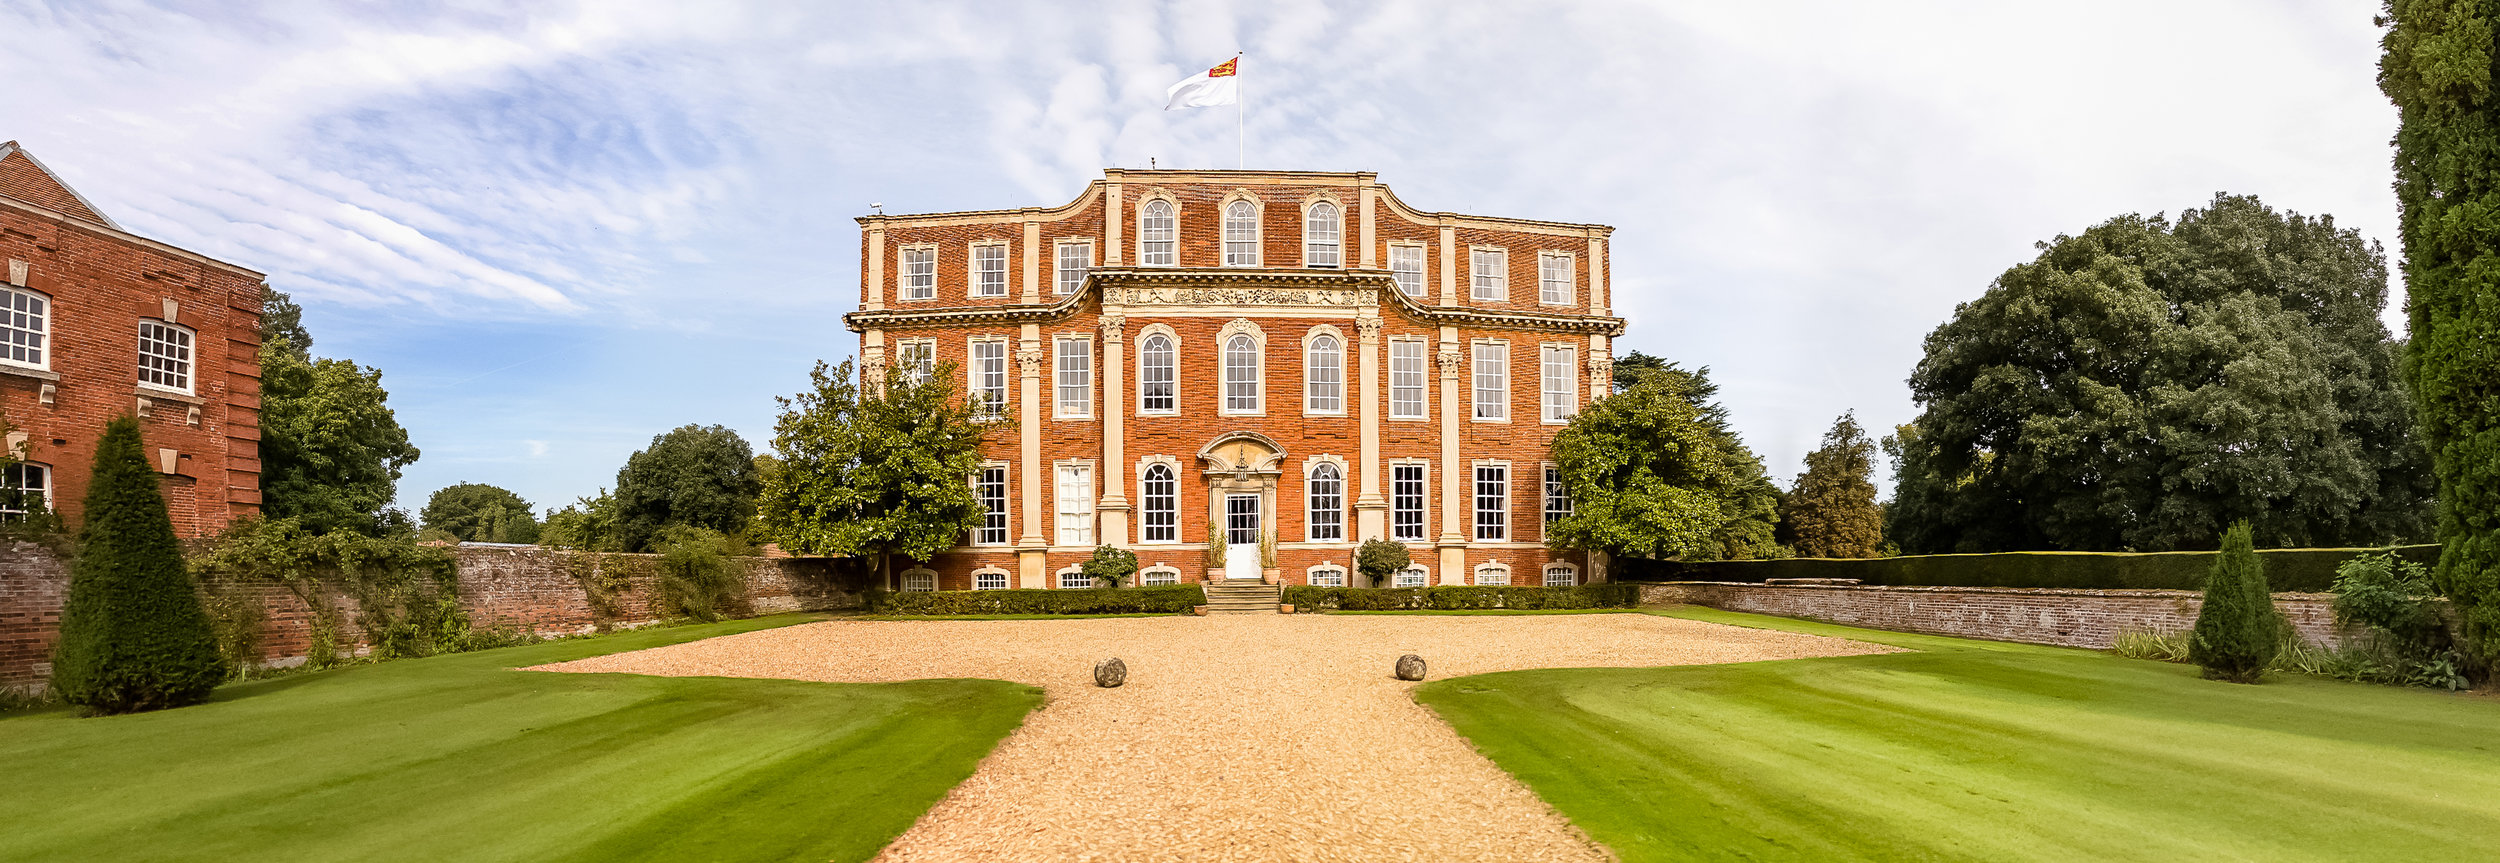 Chicheley Hall - Licensed for ceremoniesHouse capacity: 80 seated guests / 150 evening guestsMarquee in the grounds capacity: 600 seated guestsEmail address:  Chicheleyweddings@chicheleymiltonkeynes.co.uk